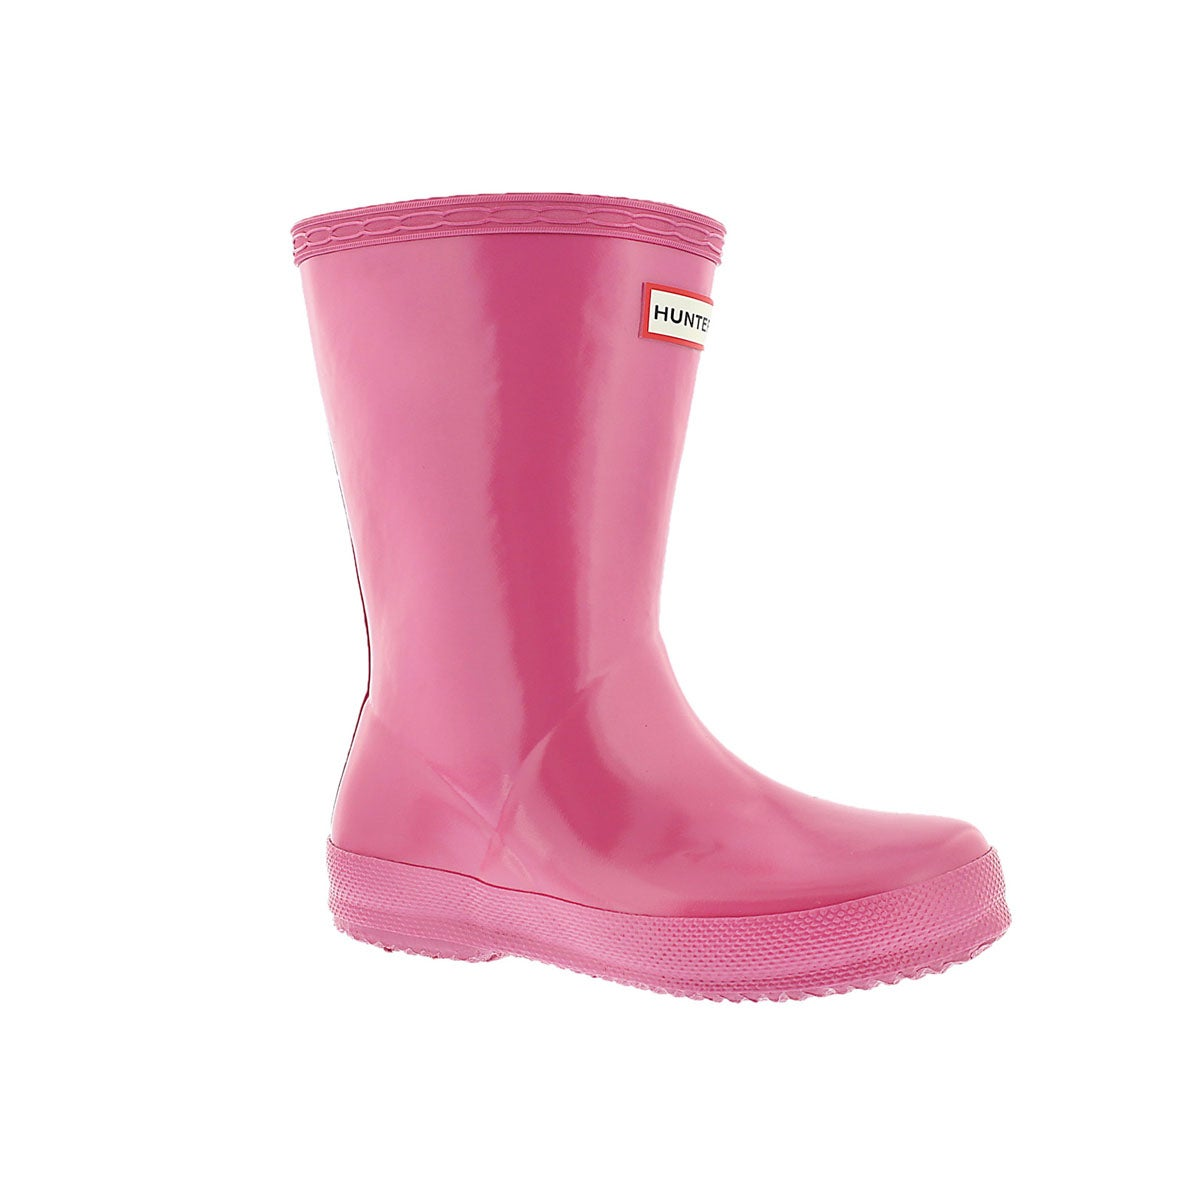 Infants' FIRST CLASSIC GLOSS pink rain boots